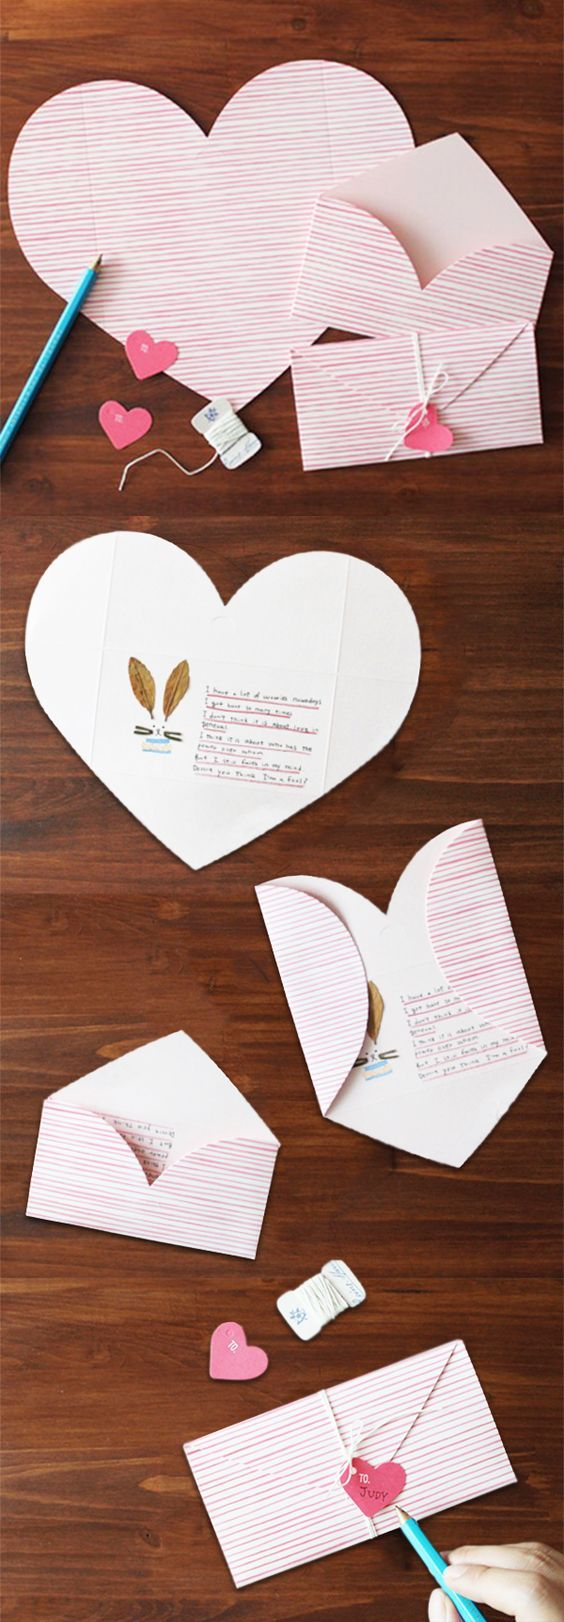 how to fold a paper heart into an envelope